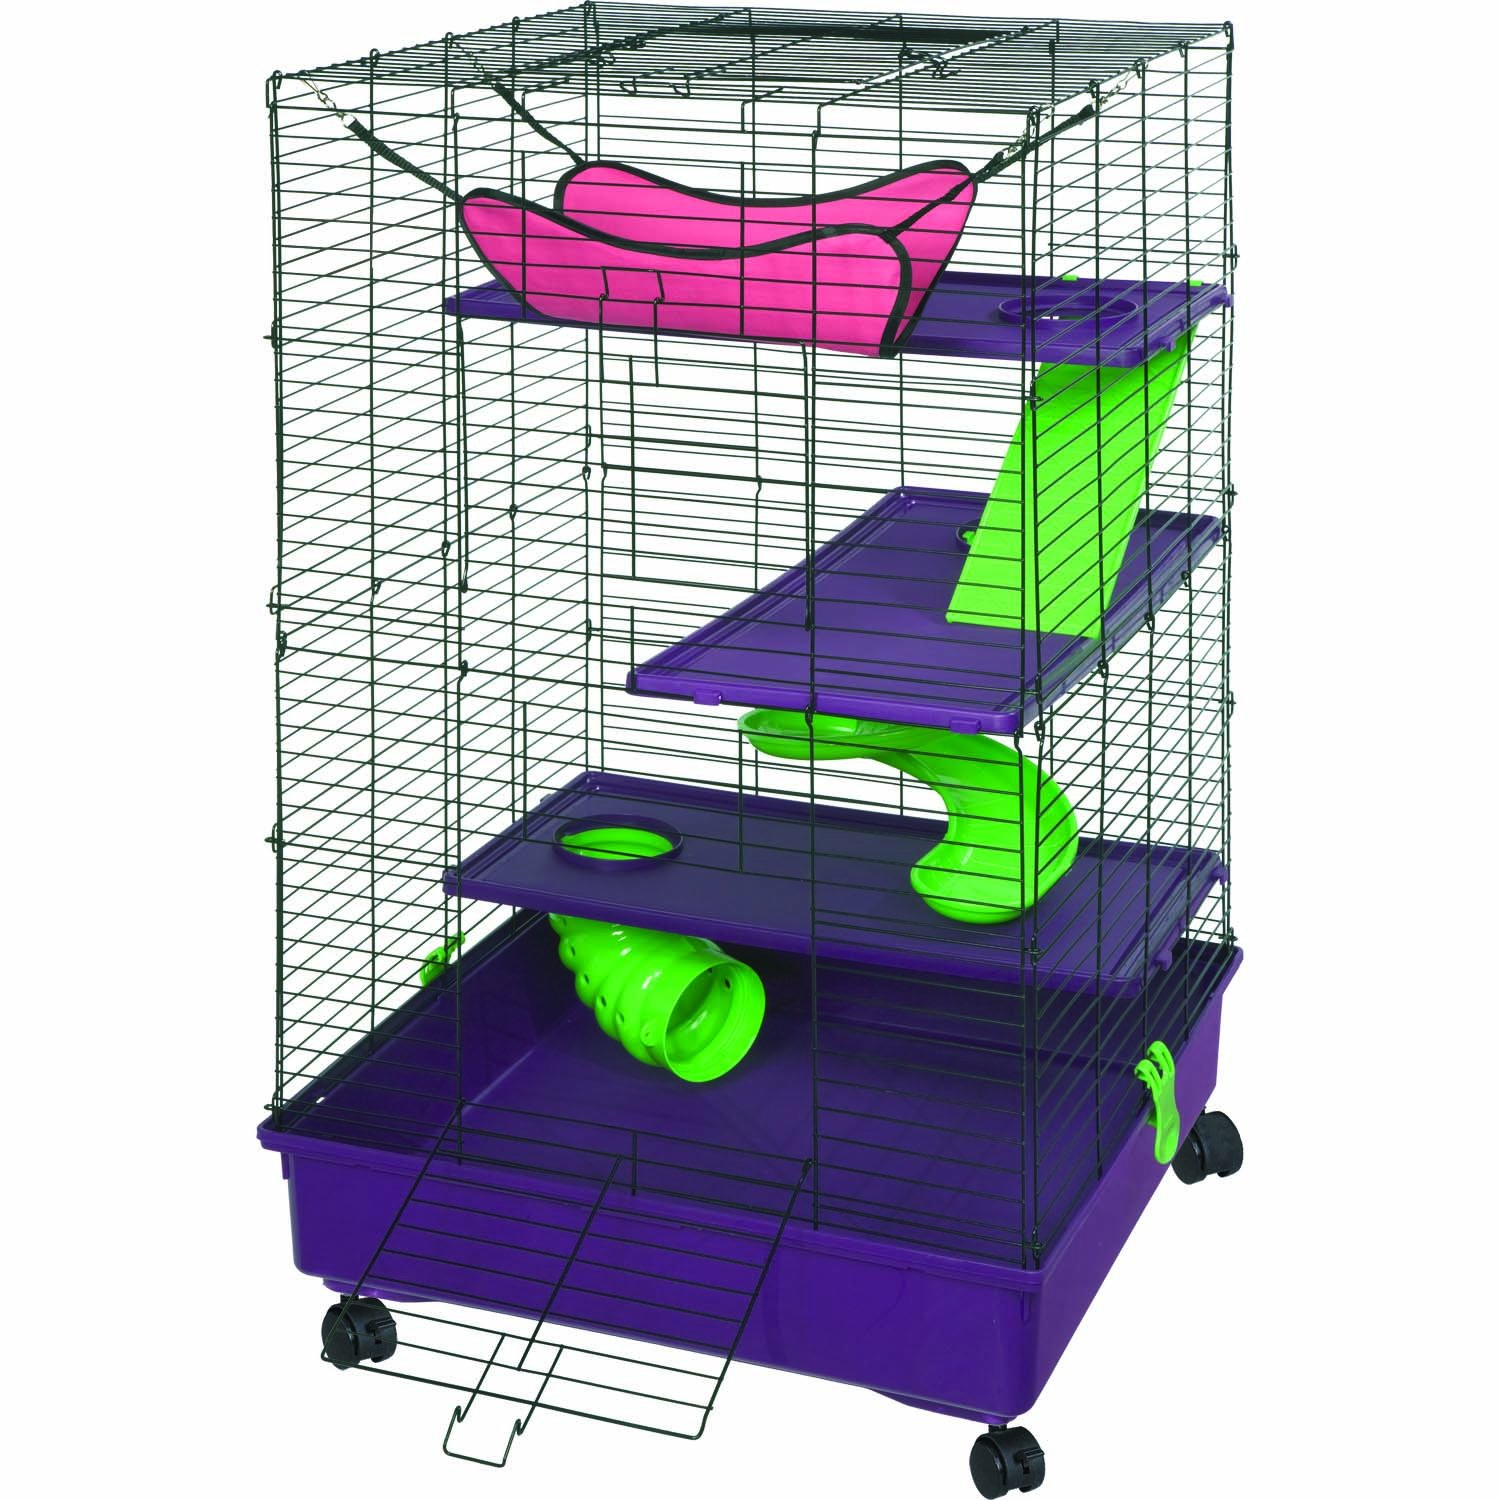 "Kaytee Multi-Level Habitat w/Removable Casters, 24"" x 24"" x 41.5"""